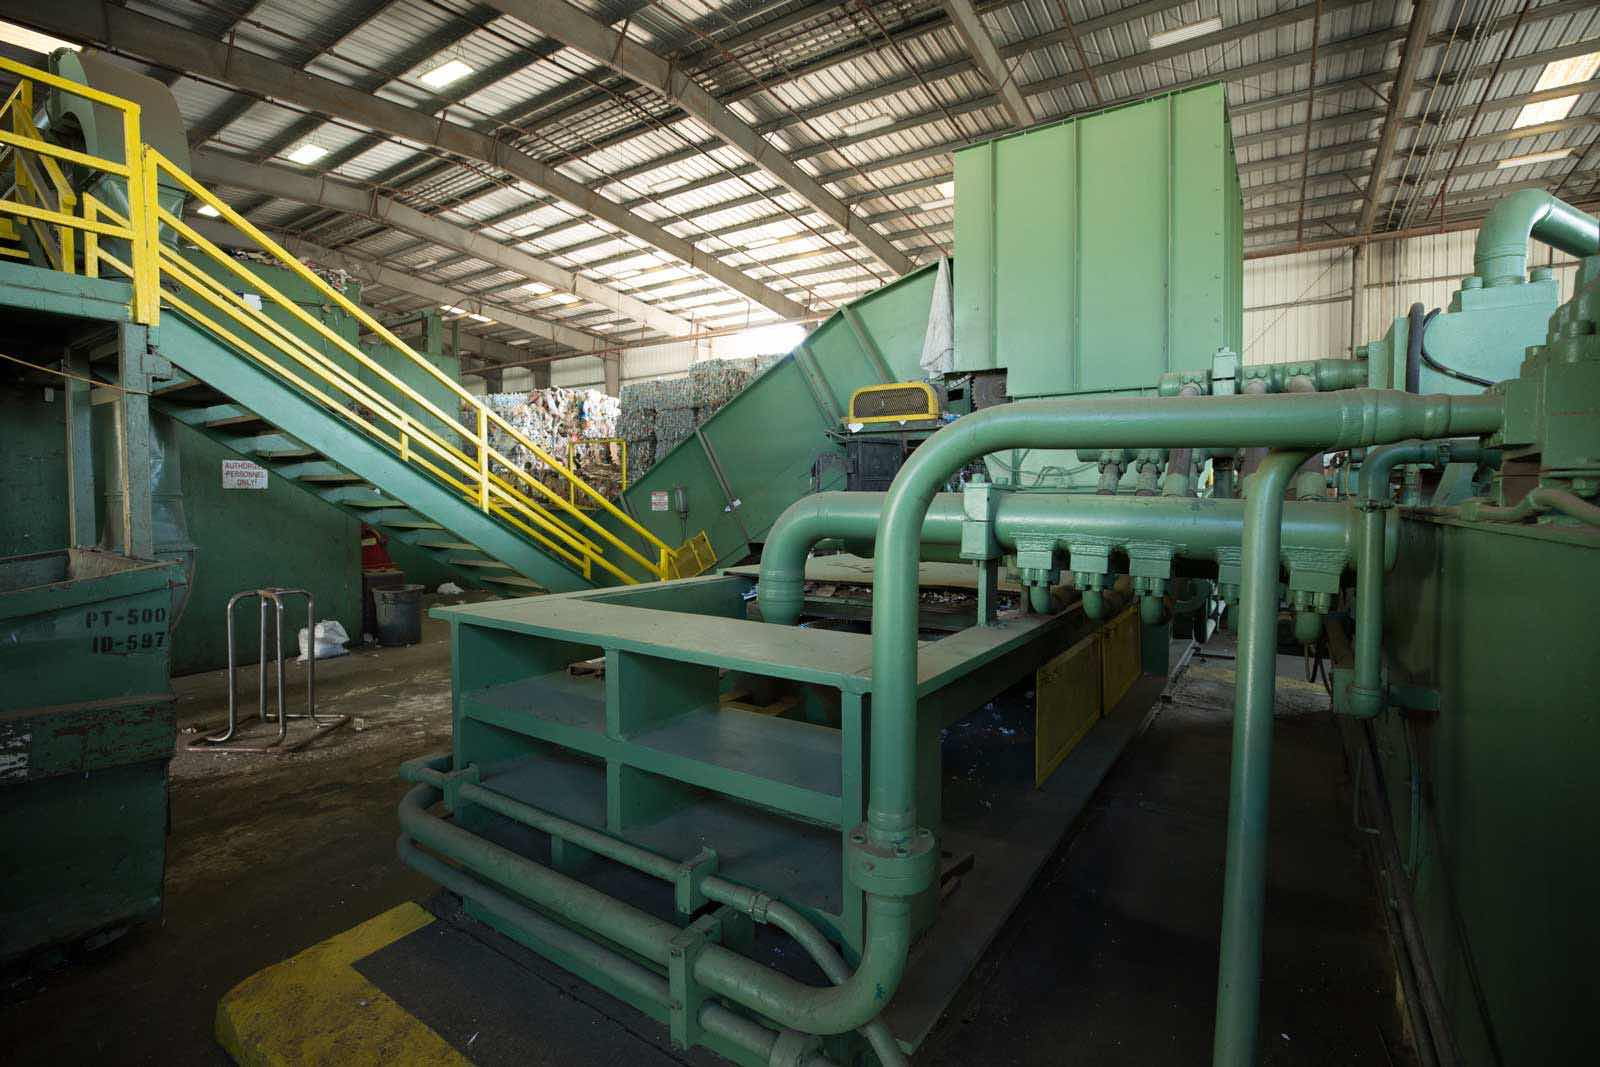 Allan Company Facilities That Keeps Waste Moving